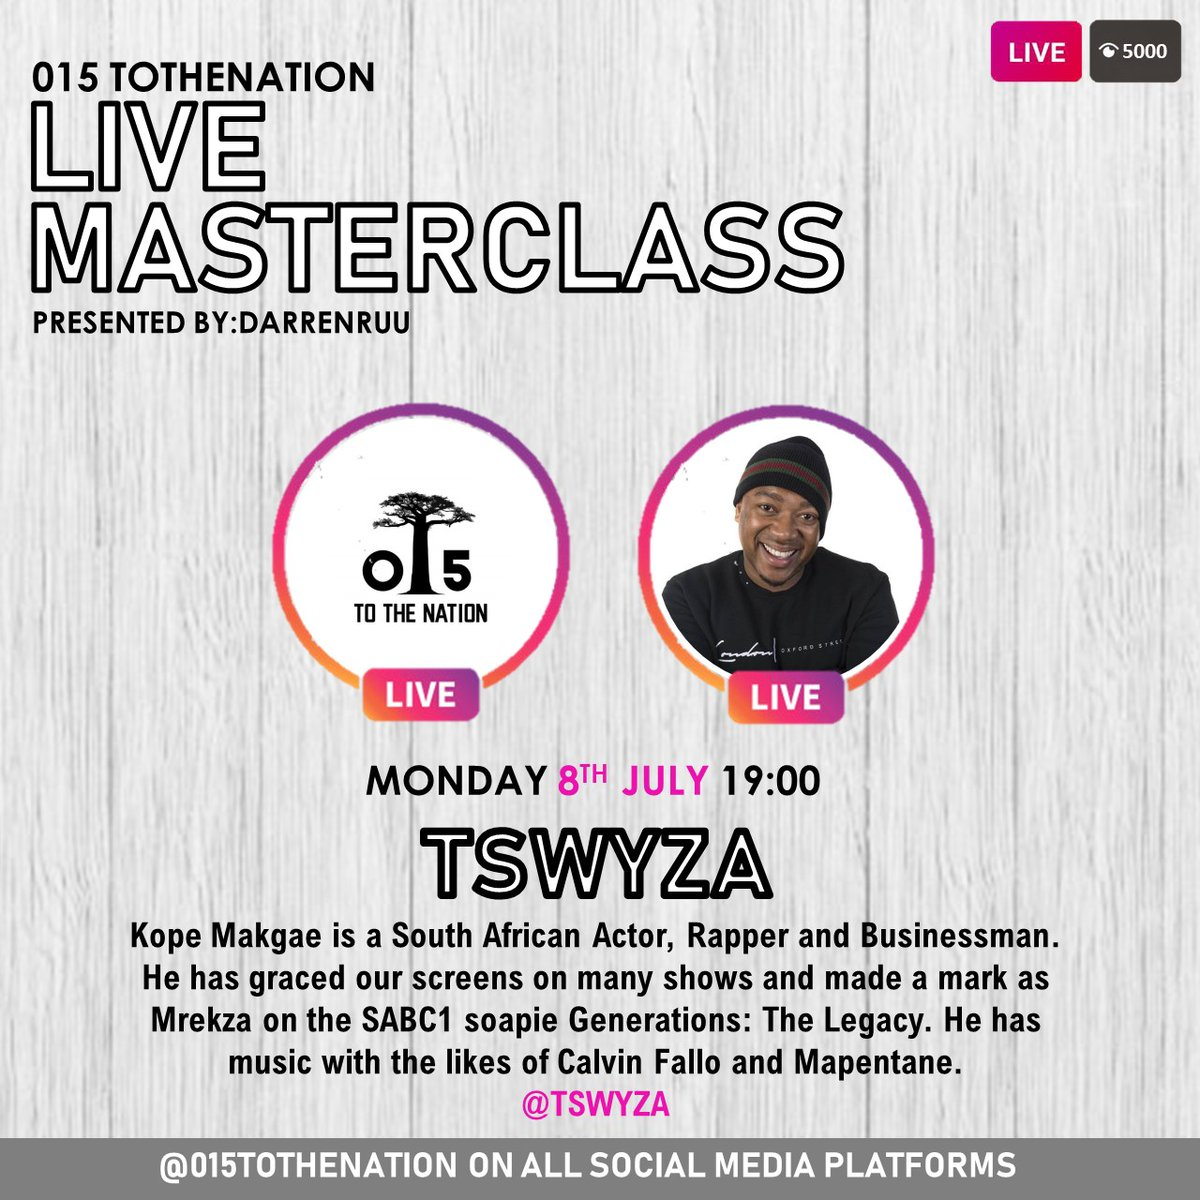 WELCOME TO SEASON 2 OF MASTERCLASS LIVE.   S2 E1 - TSWYZA.  #015ToTheNation #Limpopo #Music #Acting  #Art https://t.co/KasjP3uOlS